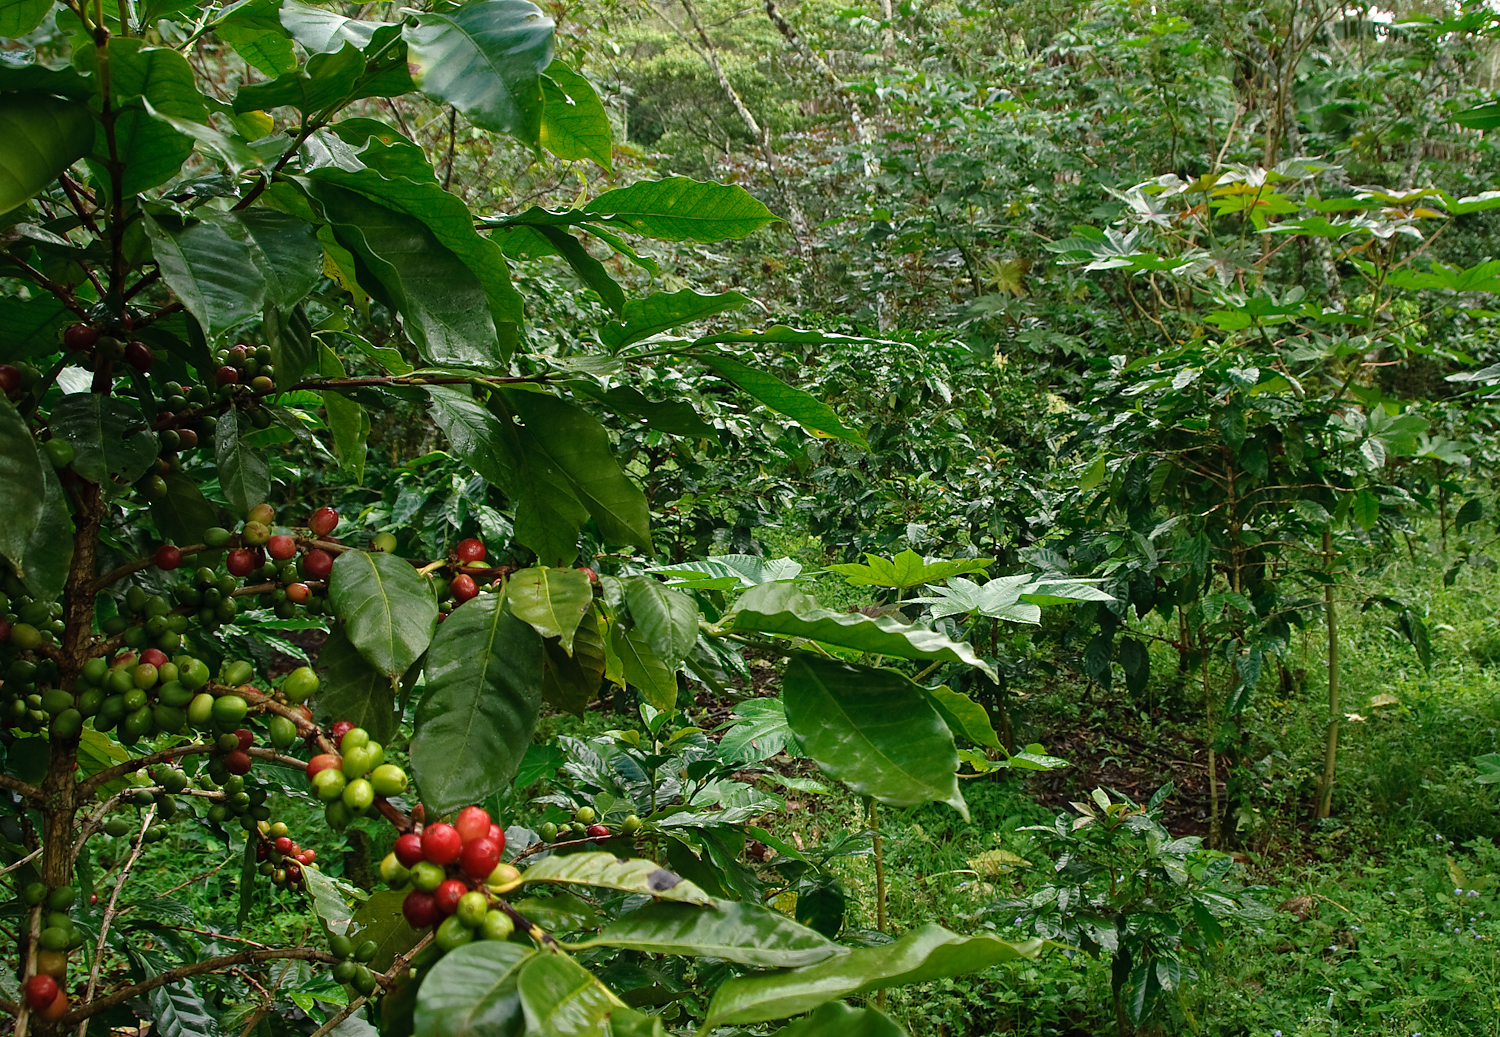 Shade-grown coffee plantation, photo by Marshal Hedin